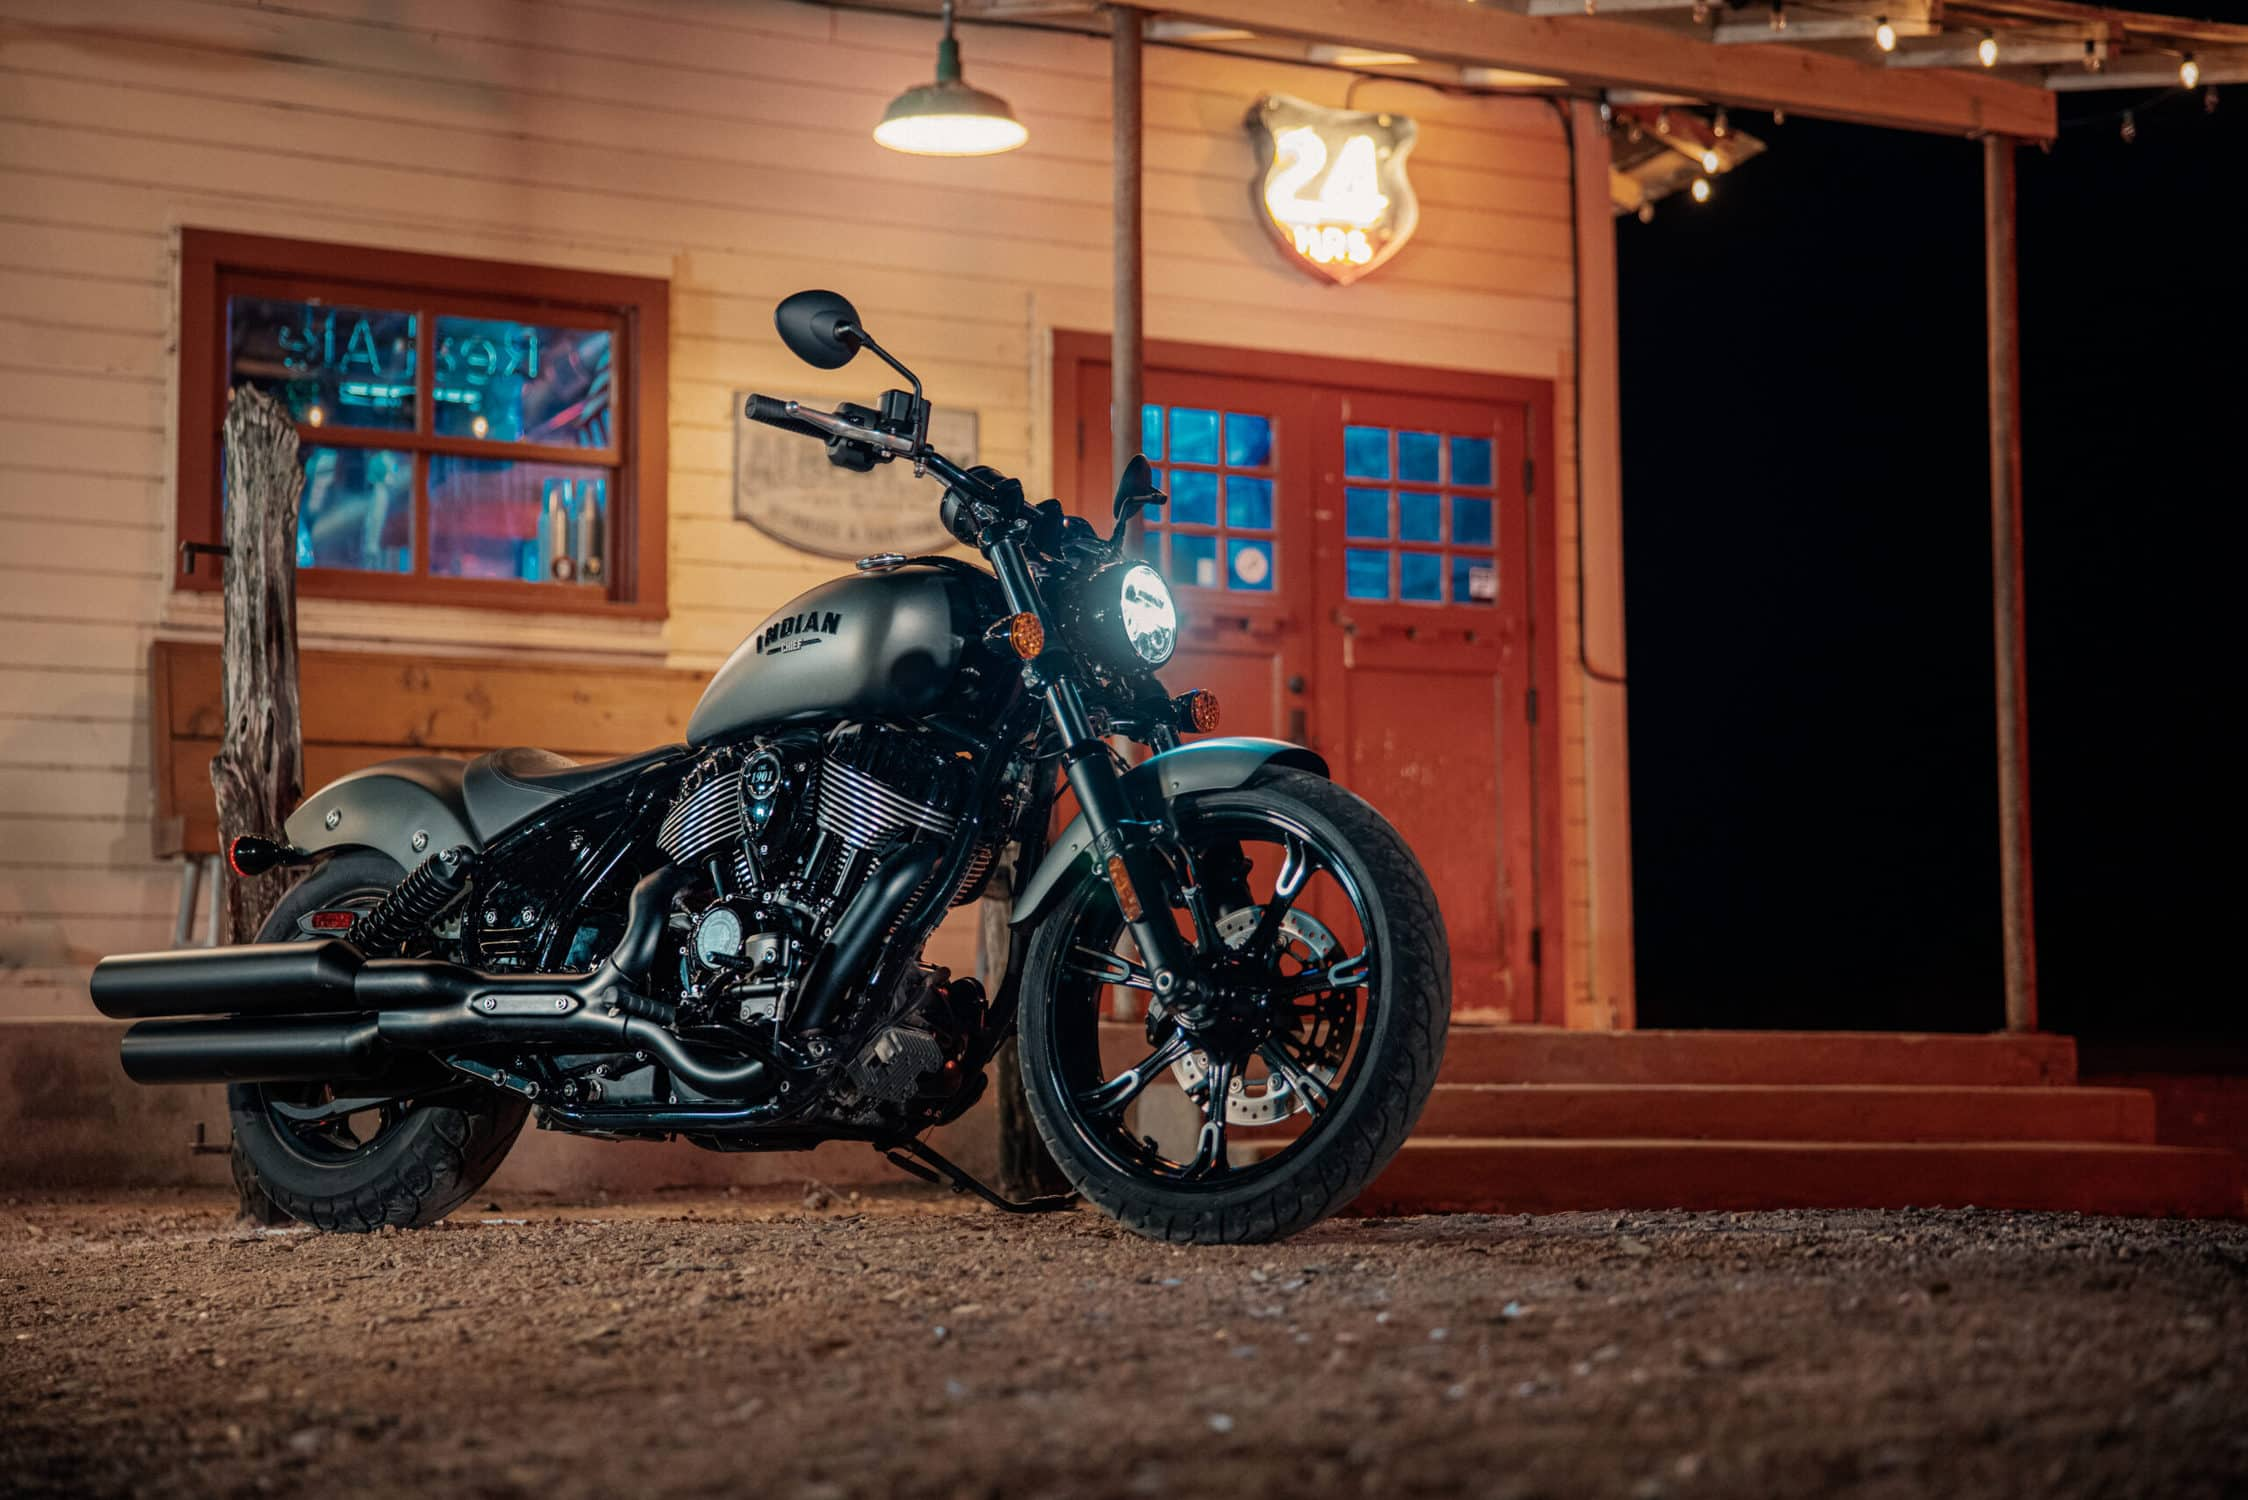 Indian Chief Custom: tres personalizaciones para la nueva Indian Chief